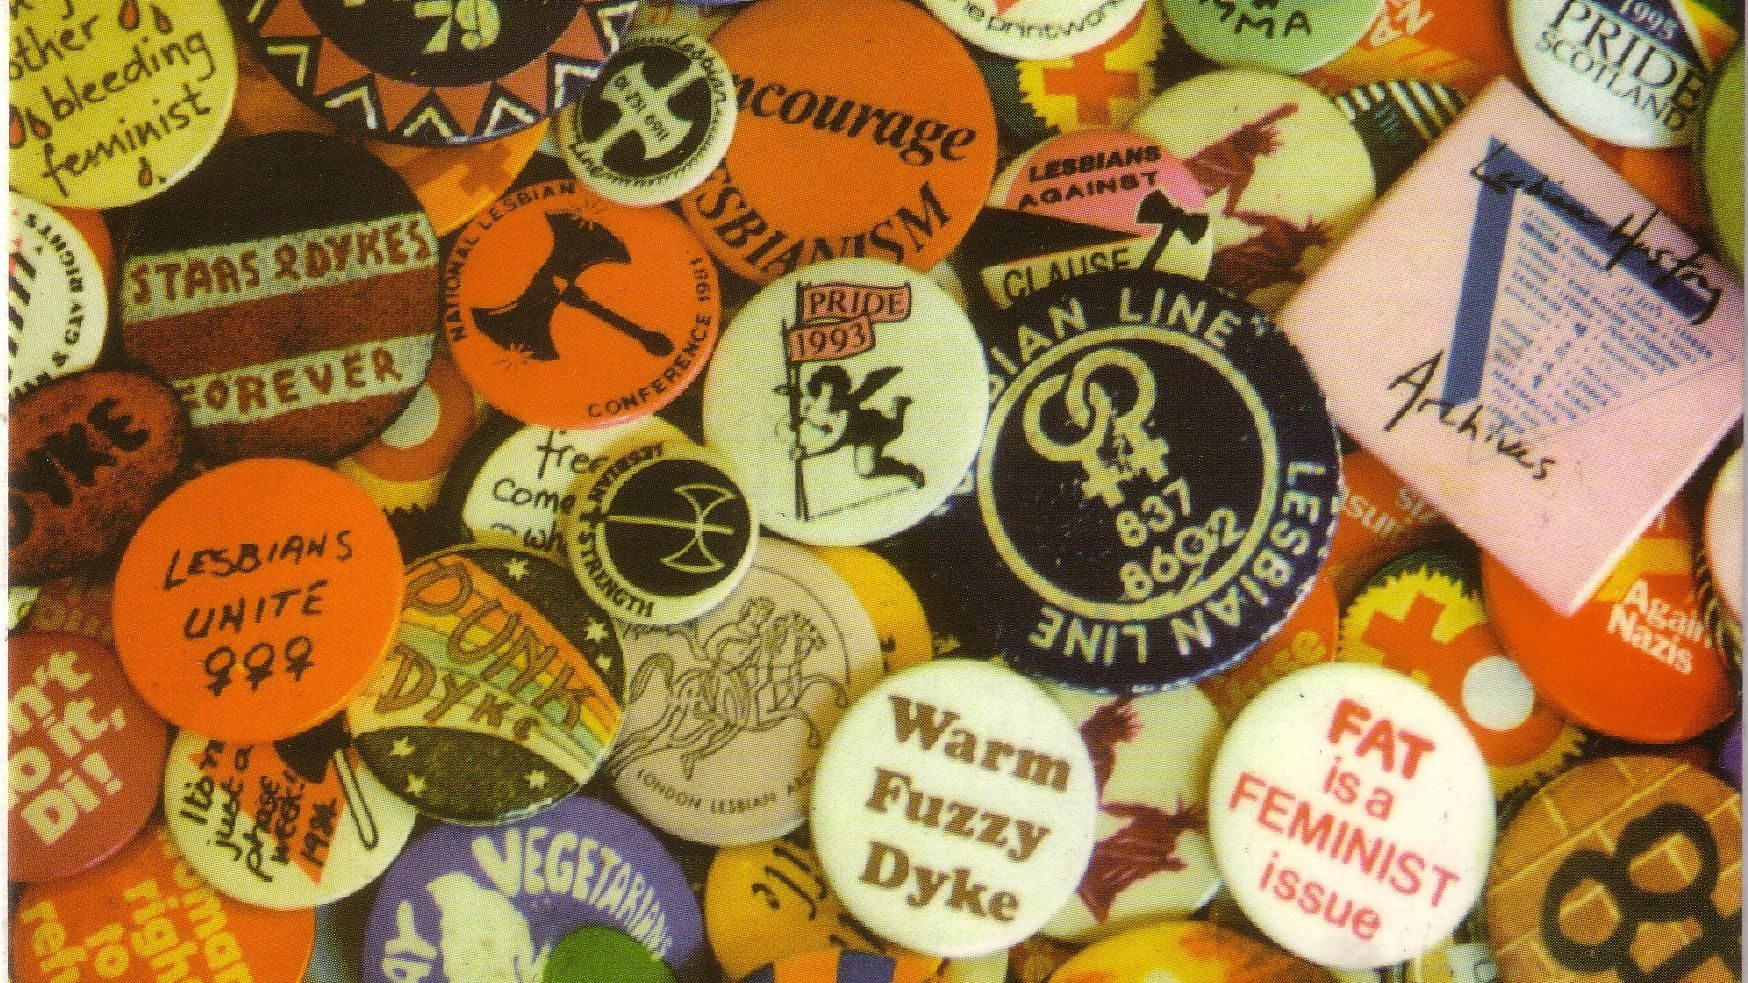 Badges from the Lesbian Archive and Information Centre